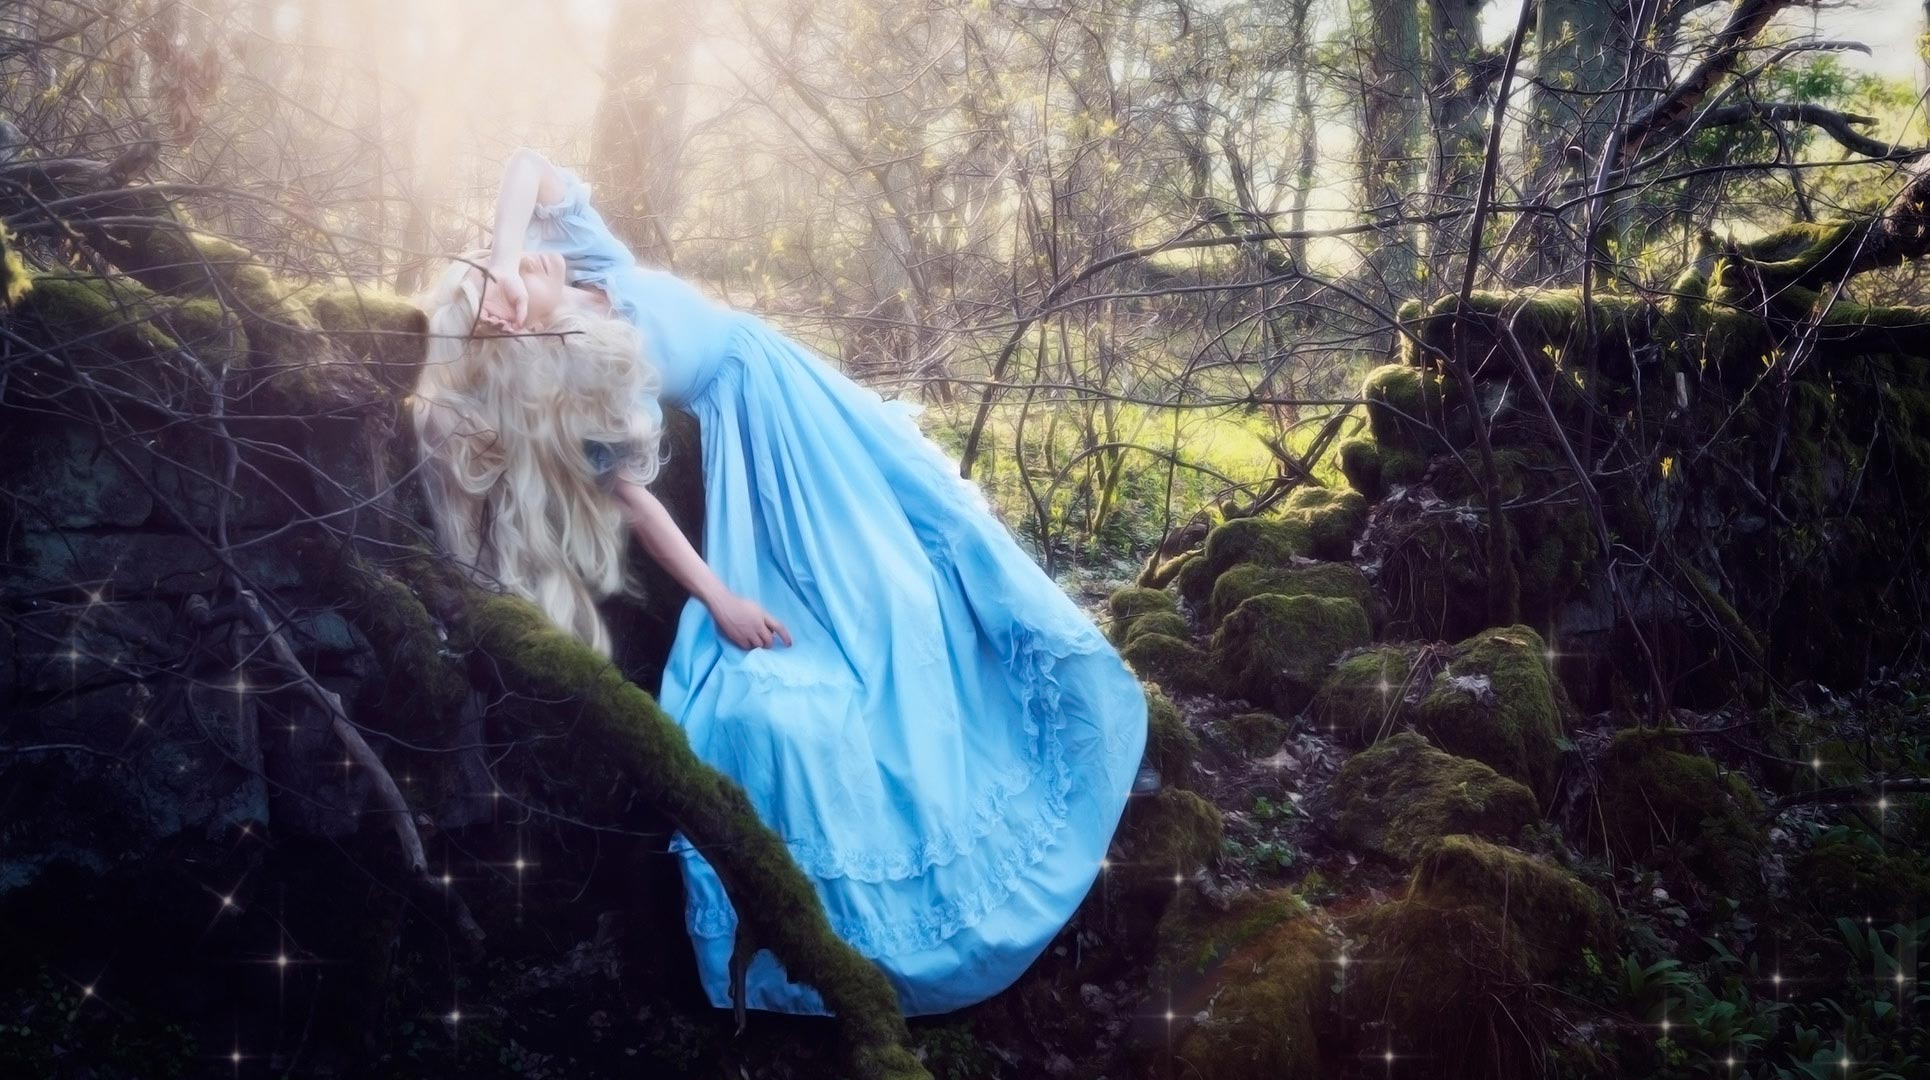 Nicola_Taylor_Art_Photography_Dreaming_As_the_Summers_Die_1